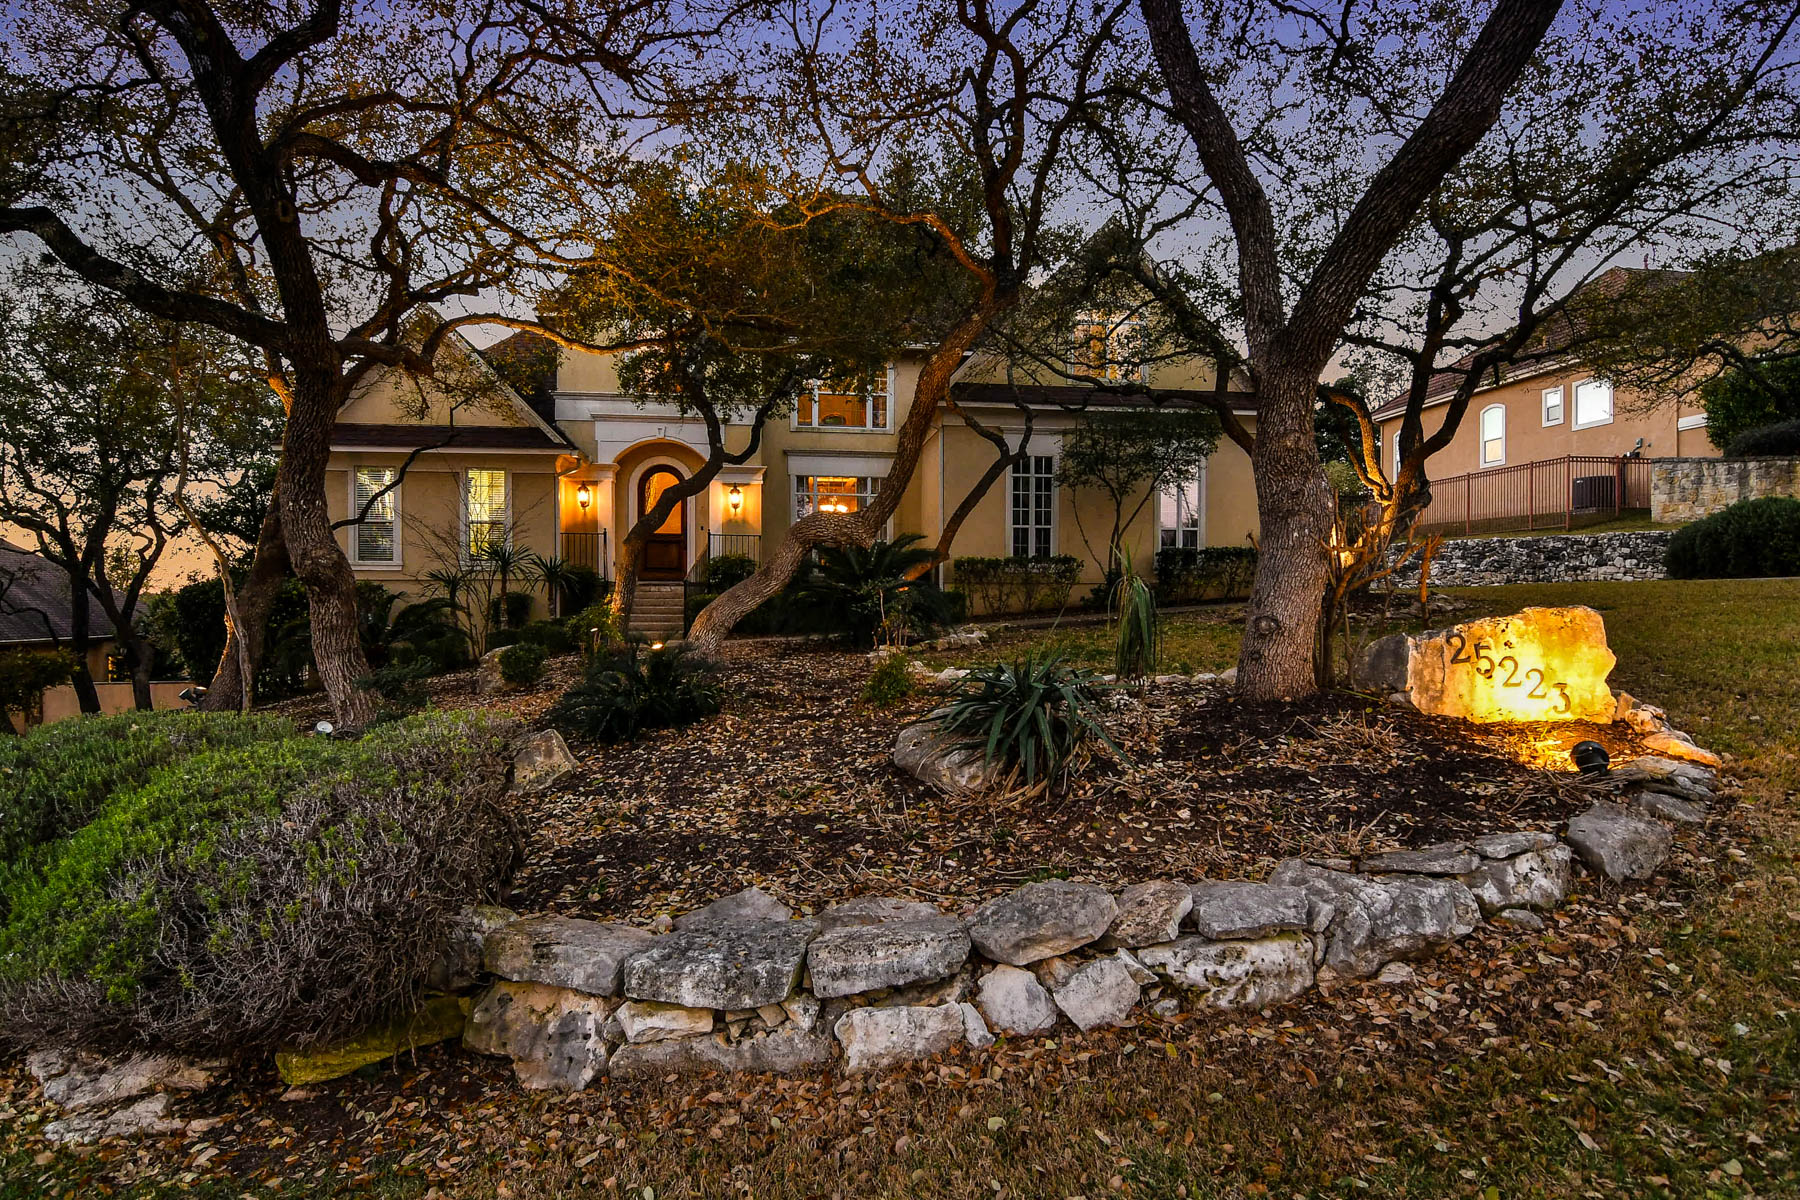 Single Family Home for Sale at Impeccable Quality and Style in Summerglen 25223 Doral Crest San Antonio, Texas 78260 United States